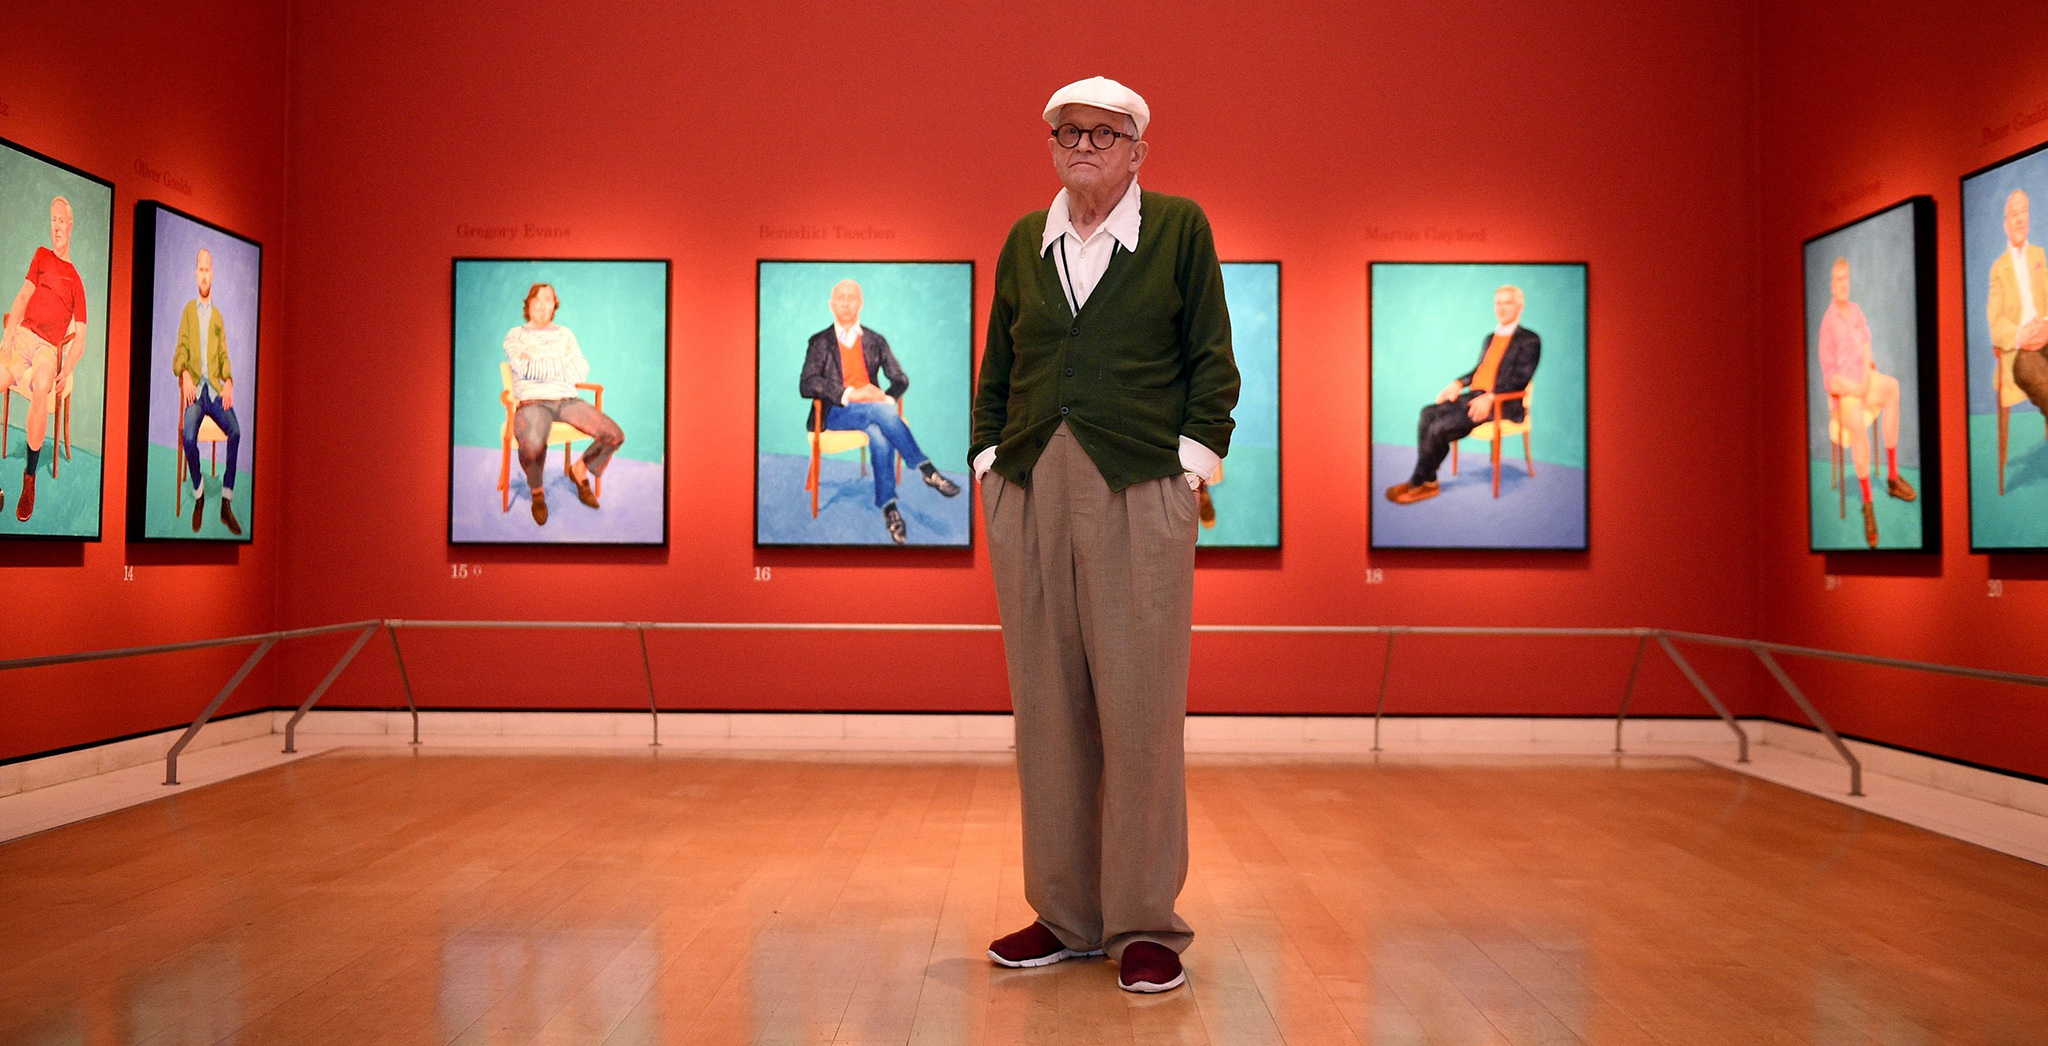 Artist David Hockney poses for photographs in the Sackler Wing at the Royal Academy of Arts, London, where an exhibition of his work entitled 'David Hockney RA: 82 Portraits and 1 Still-life', is on display